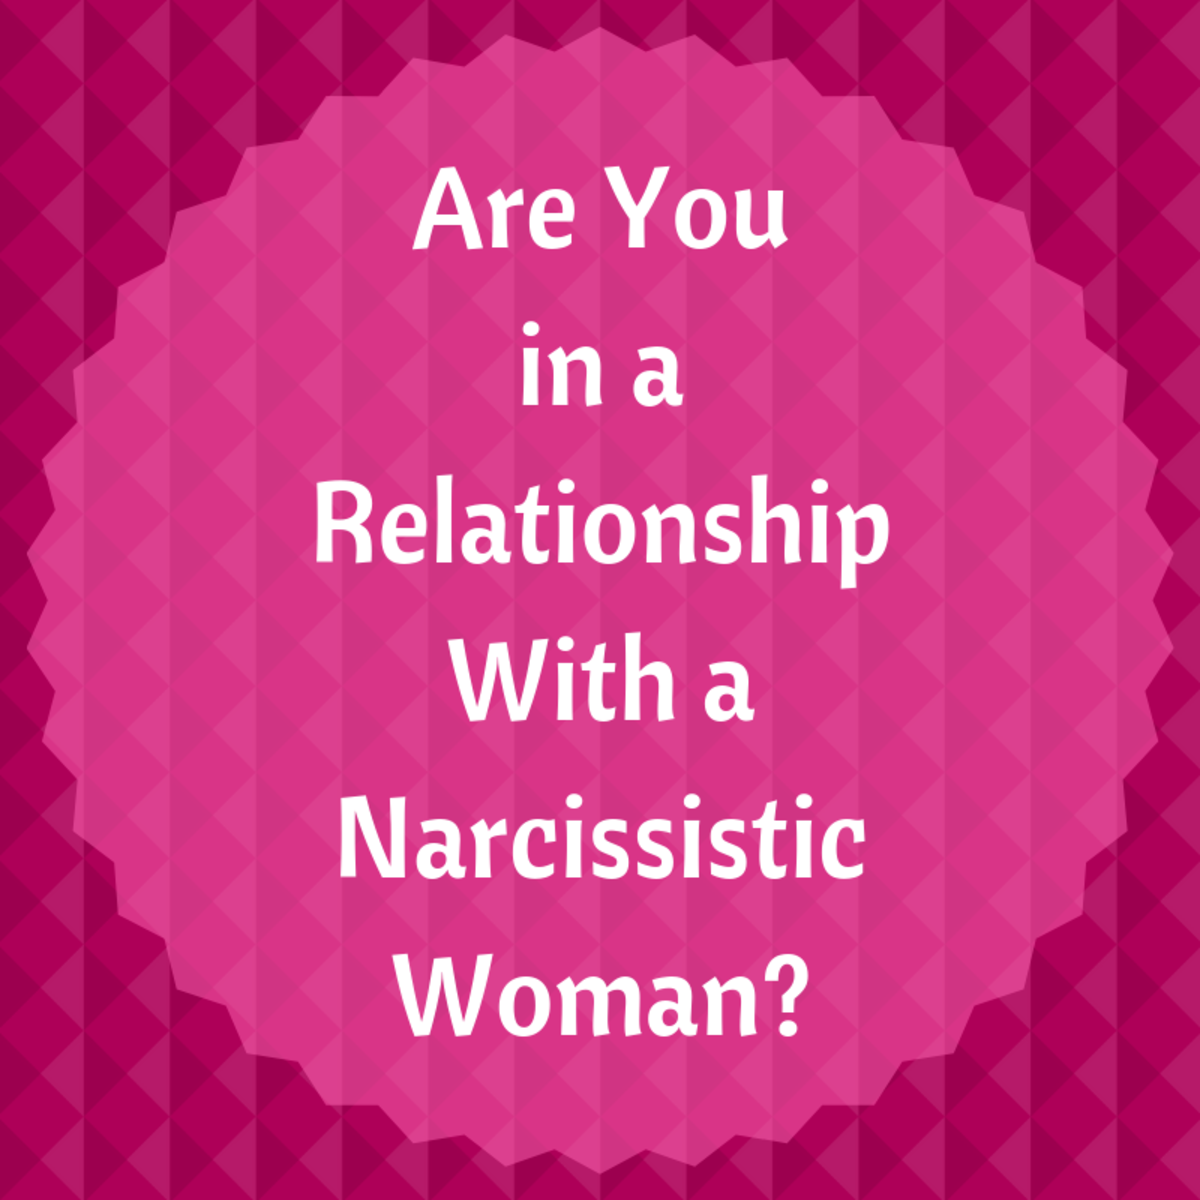 Personality disorder partner narcissistic The Narcissistic